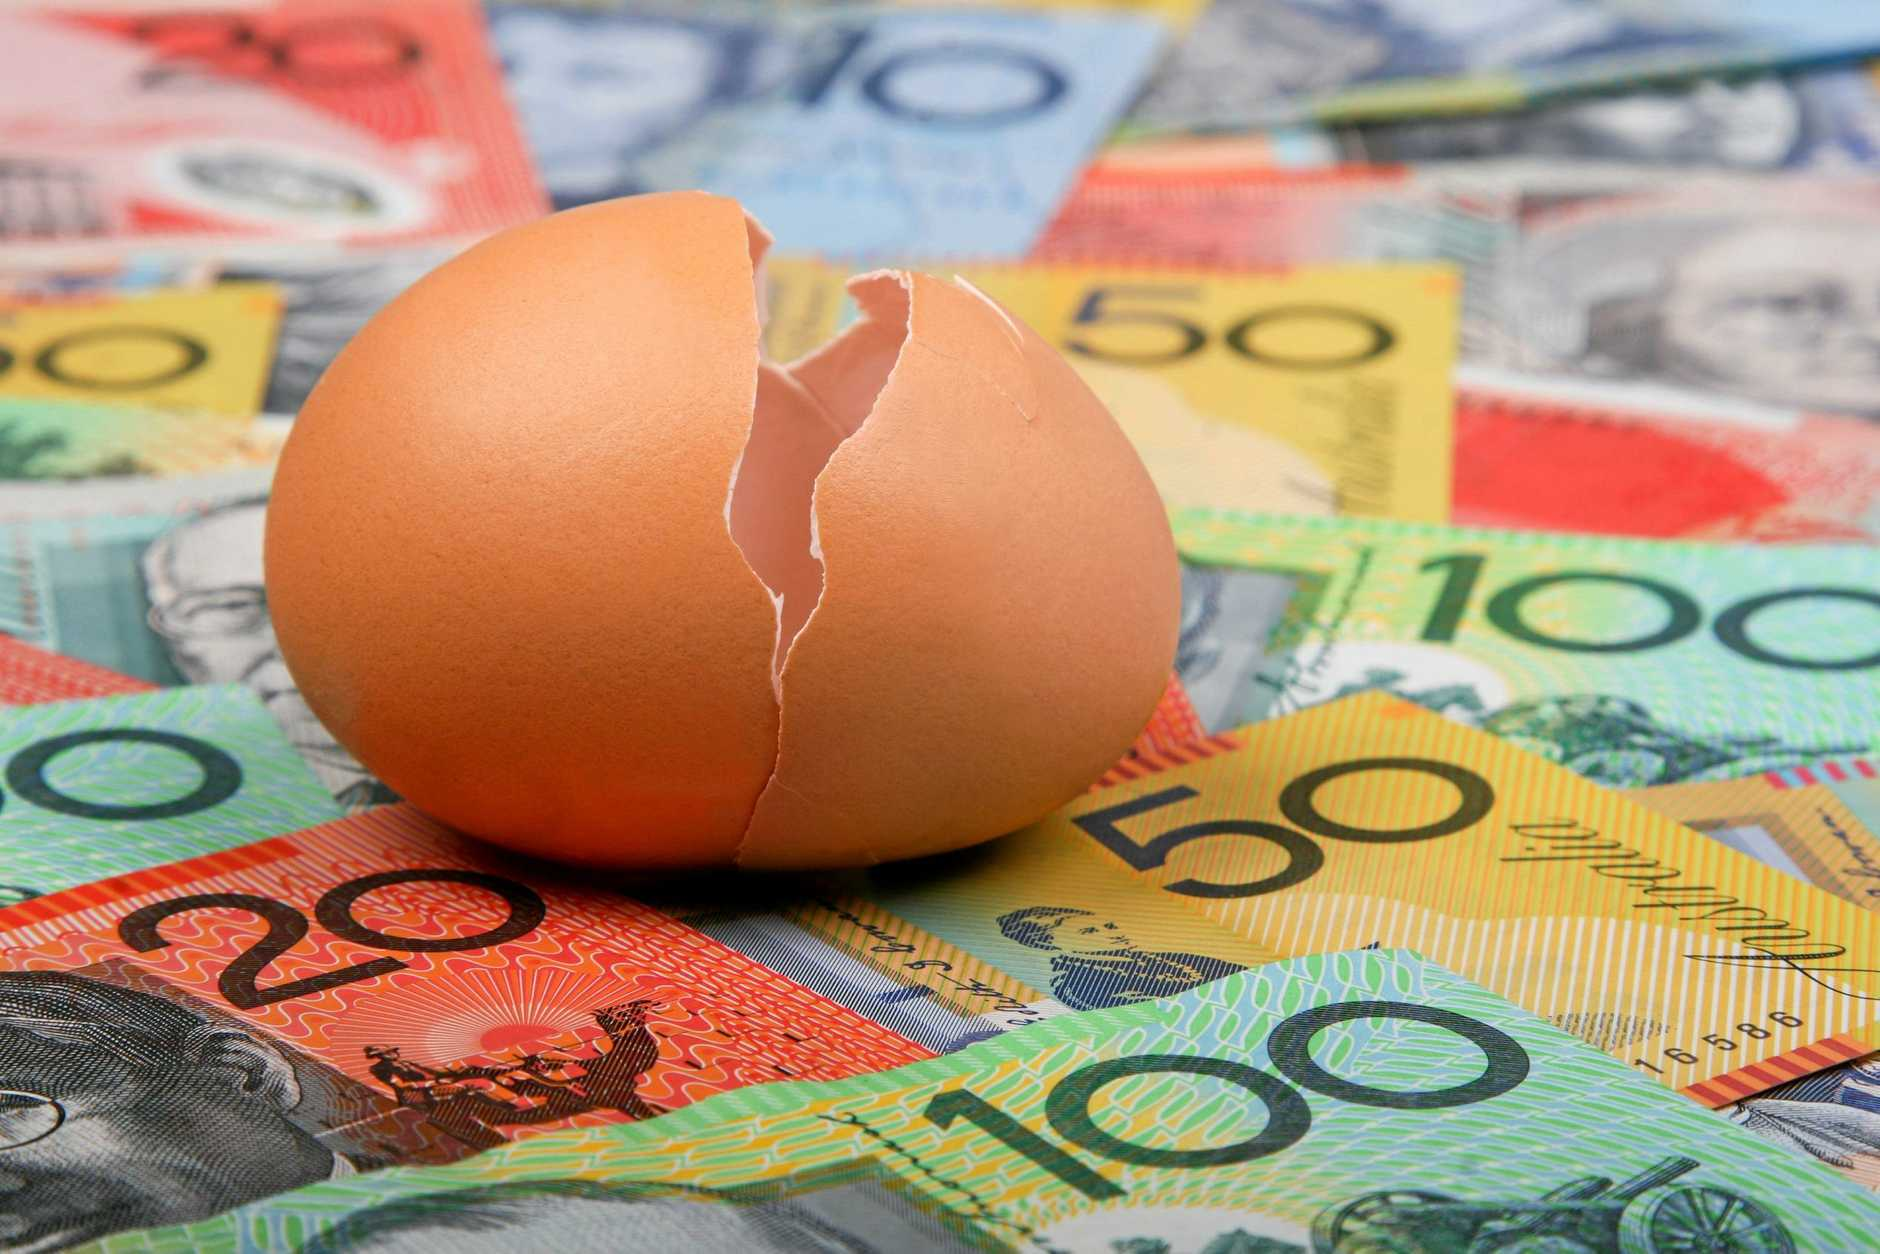 Instead of cracking open Easter eggs, check your Lotto tickets you could be $1 million richer.